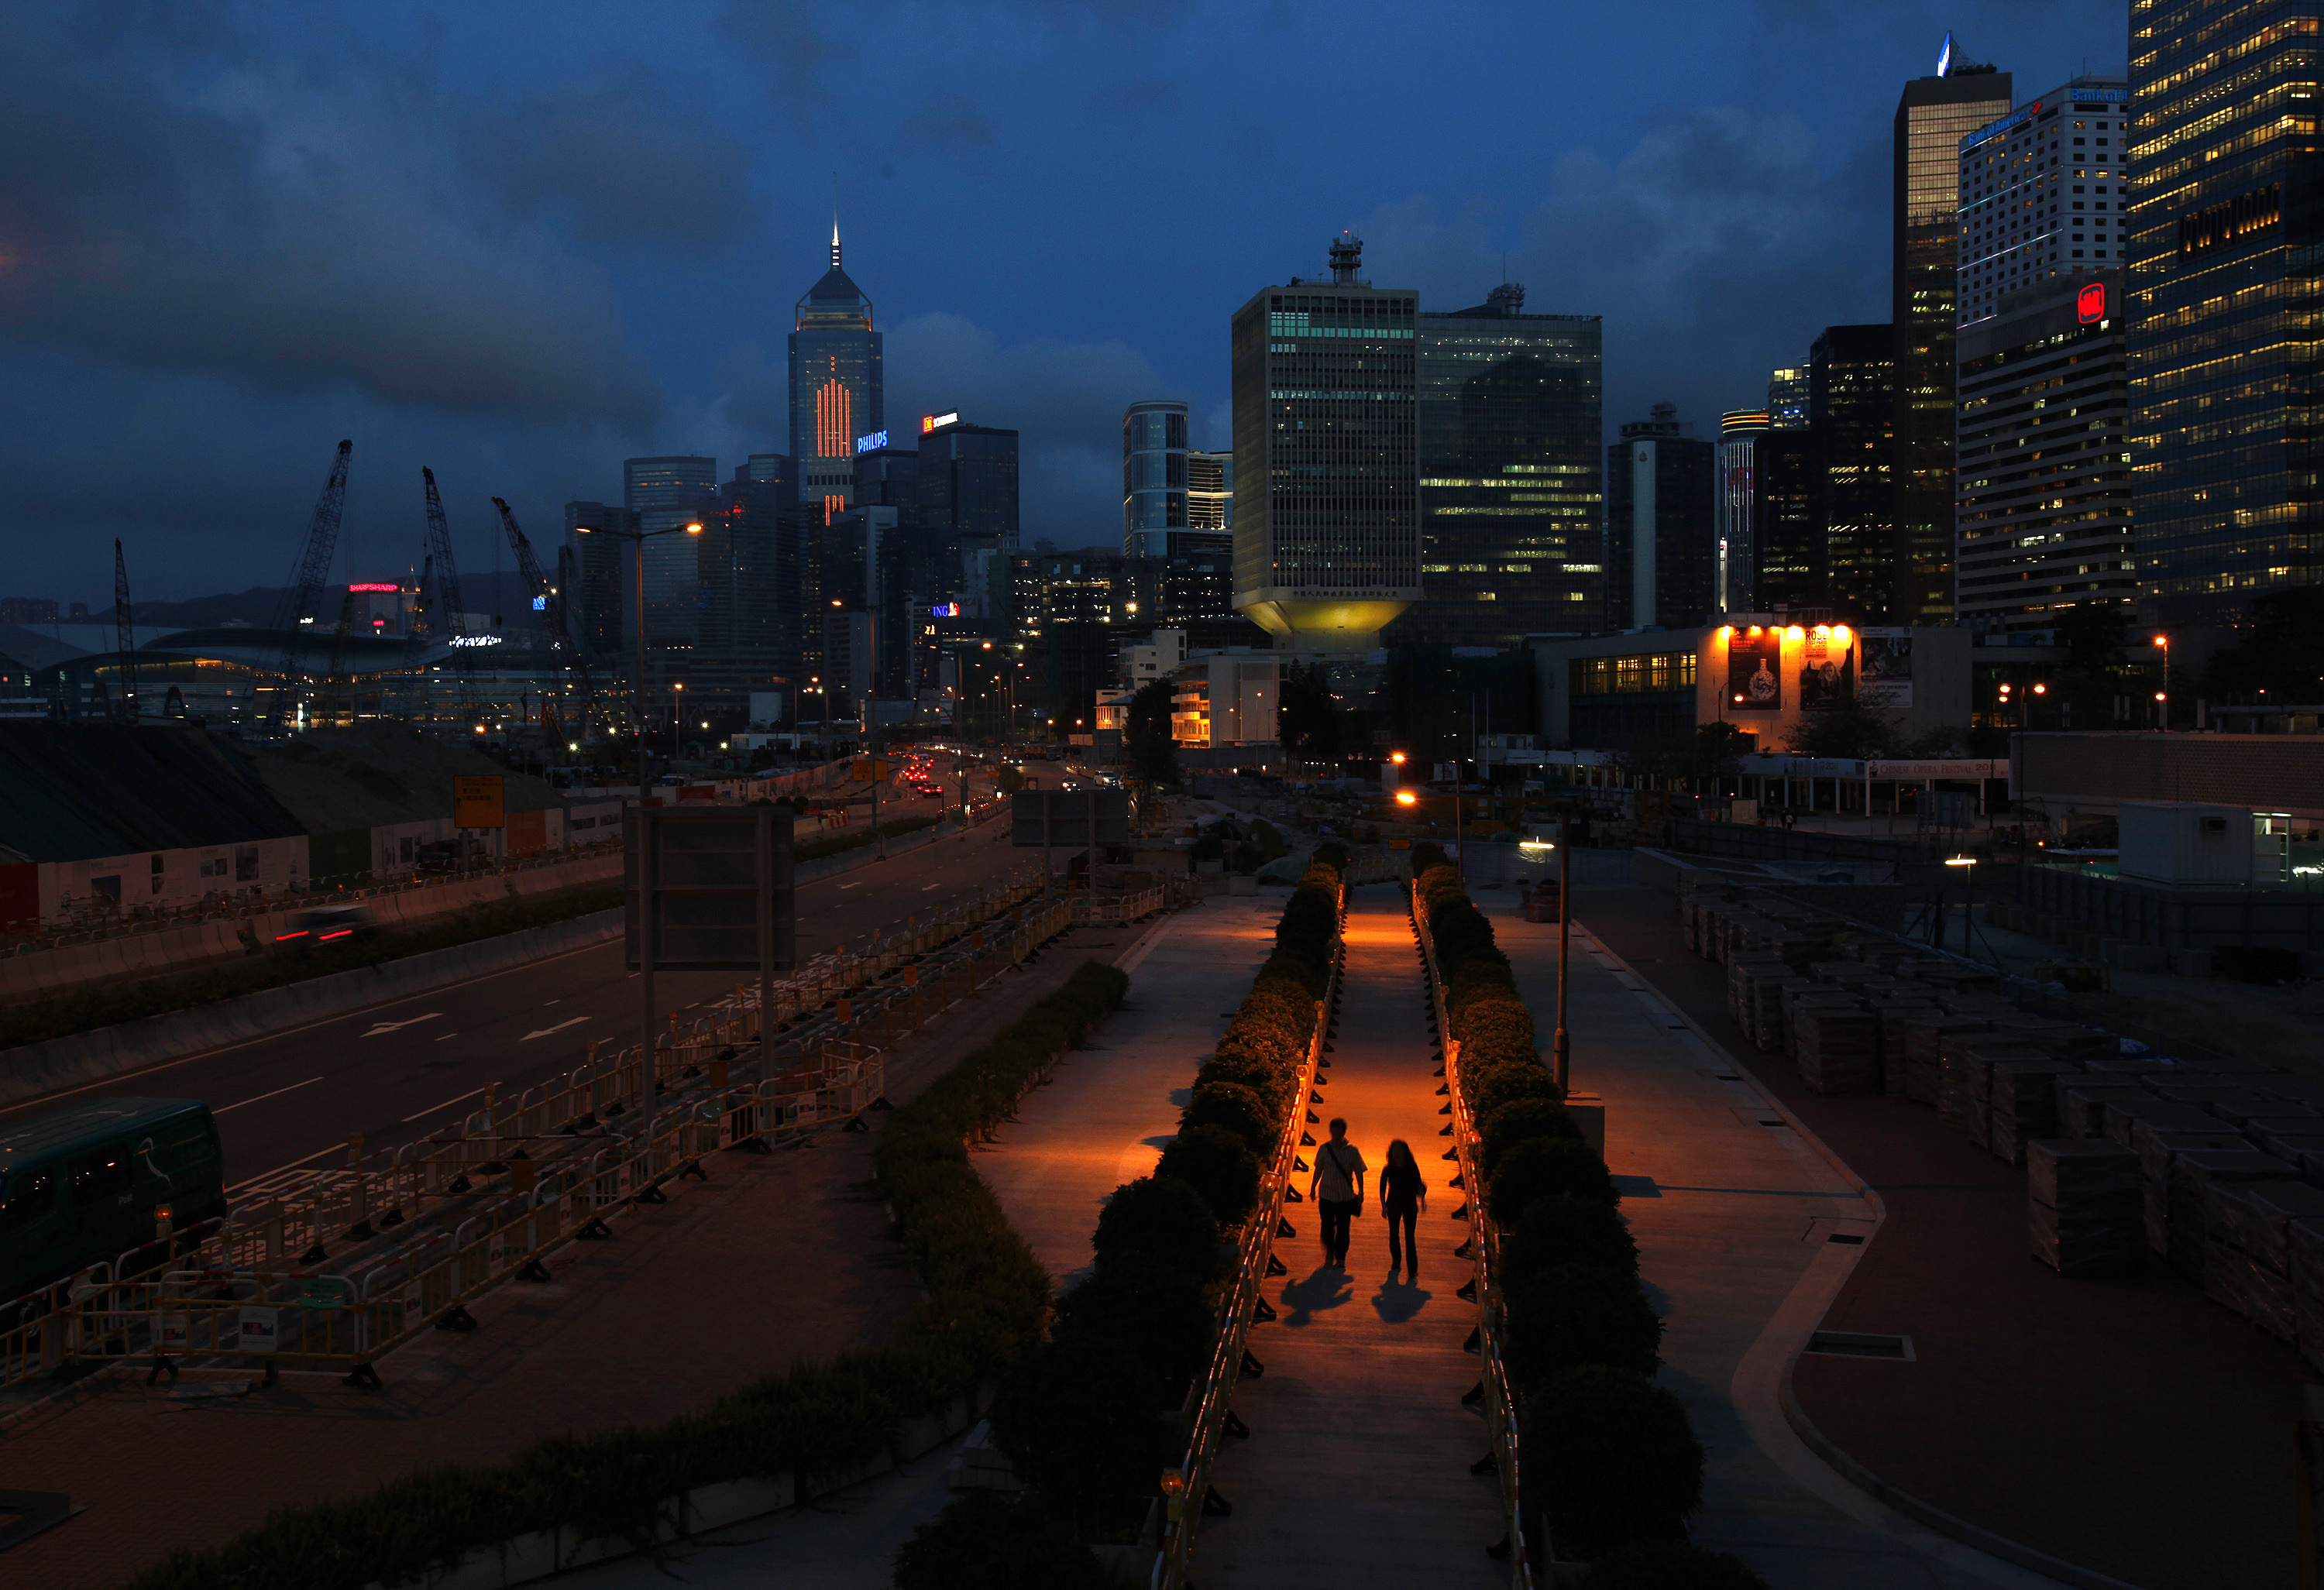 People walk on a pavement at Hong Kong's financial Central district during sunset May 11, 2011. REUTERS/Bobby Yip